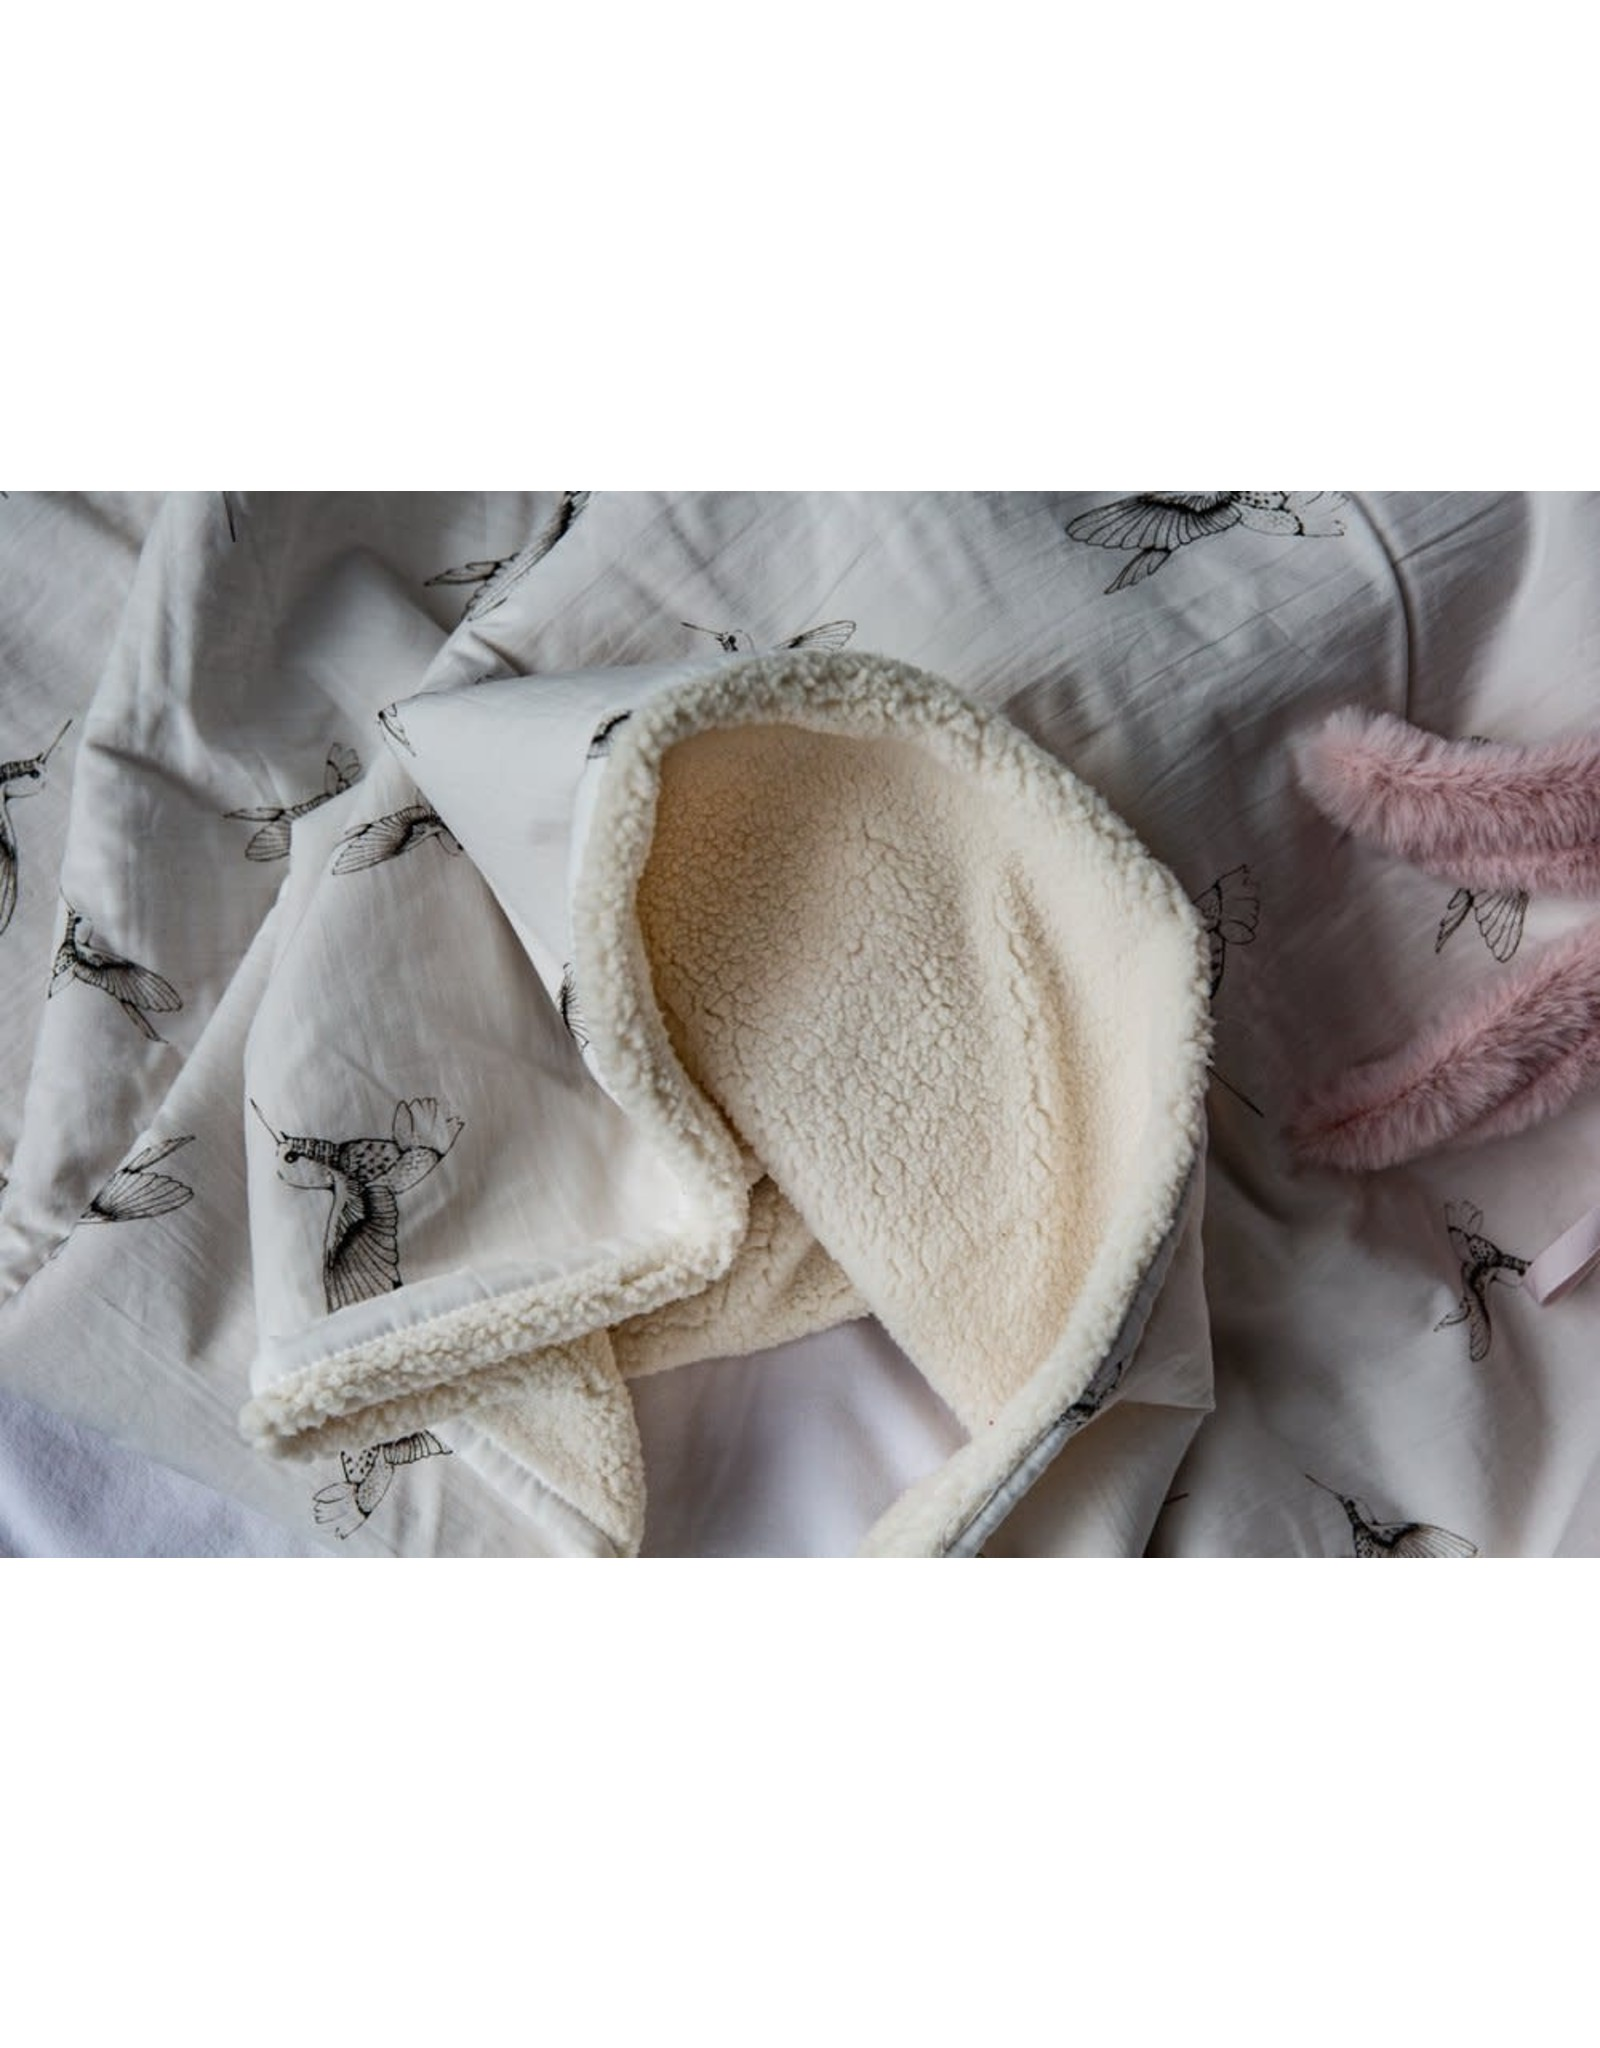 Mies & Co Mies & Co Baby Soft Teddy Blanket - Cloud Dancers Offwhite 70X100